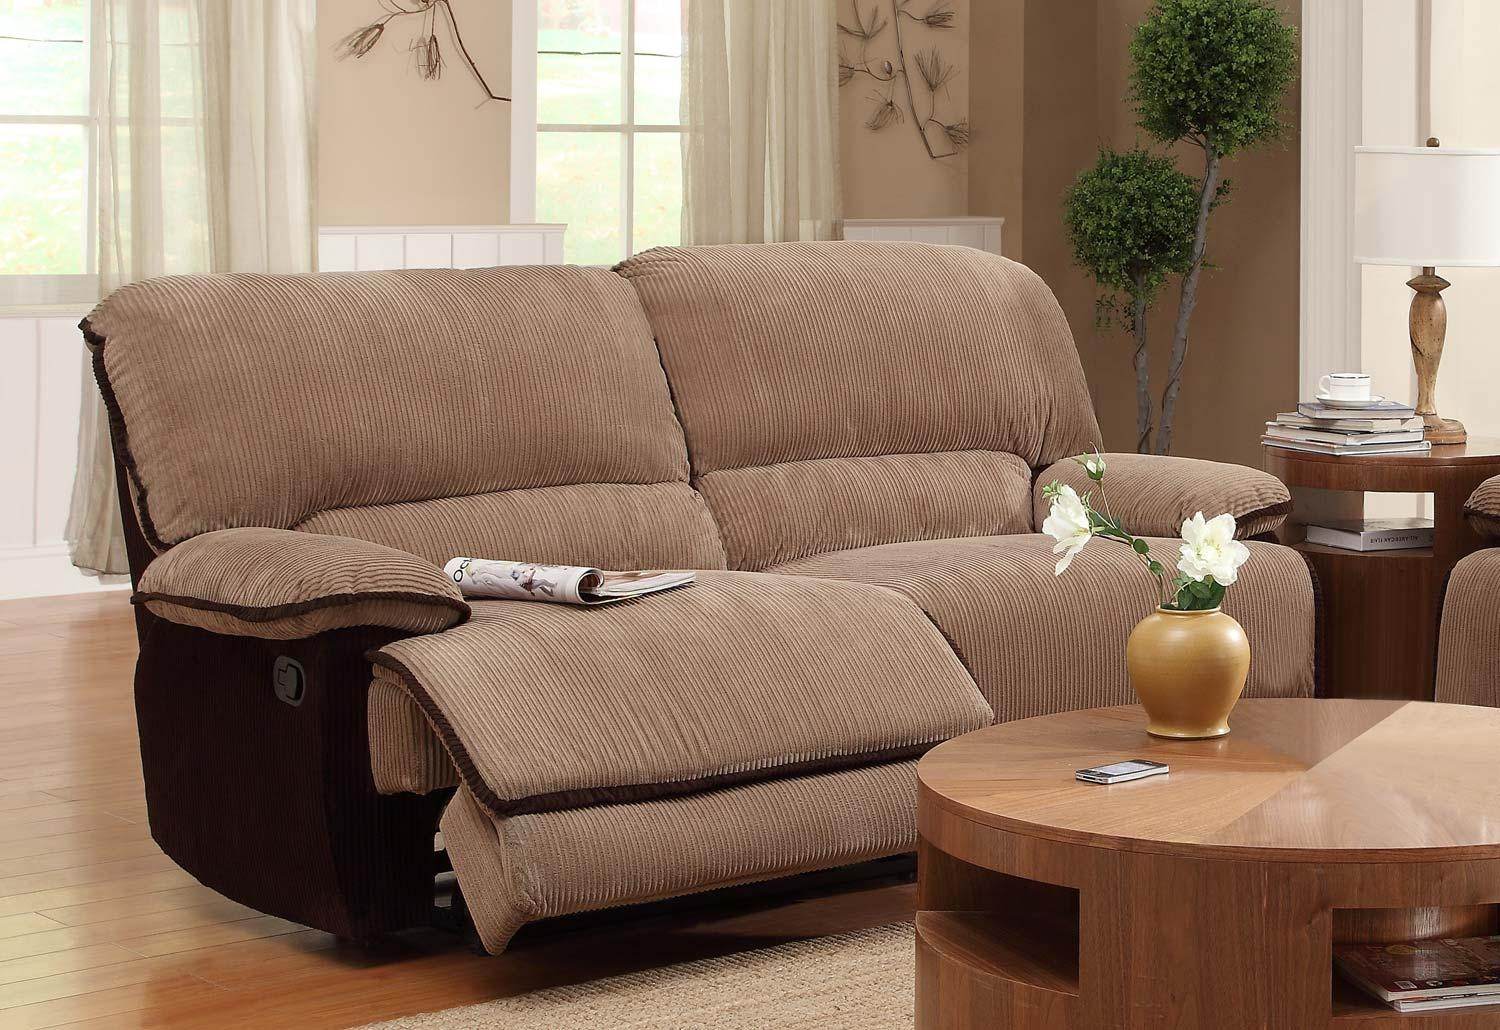 Homelegance Grantham Sofa Dual Recliner - Brown - Corduroy 9717-3 inside Brown Corduroy Sofas